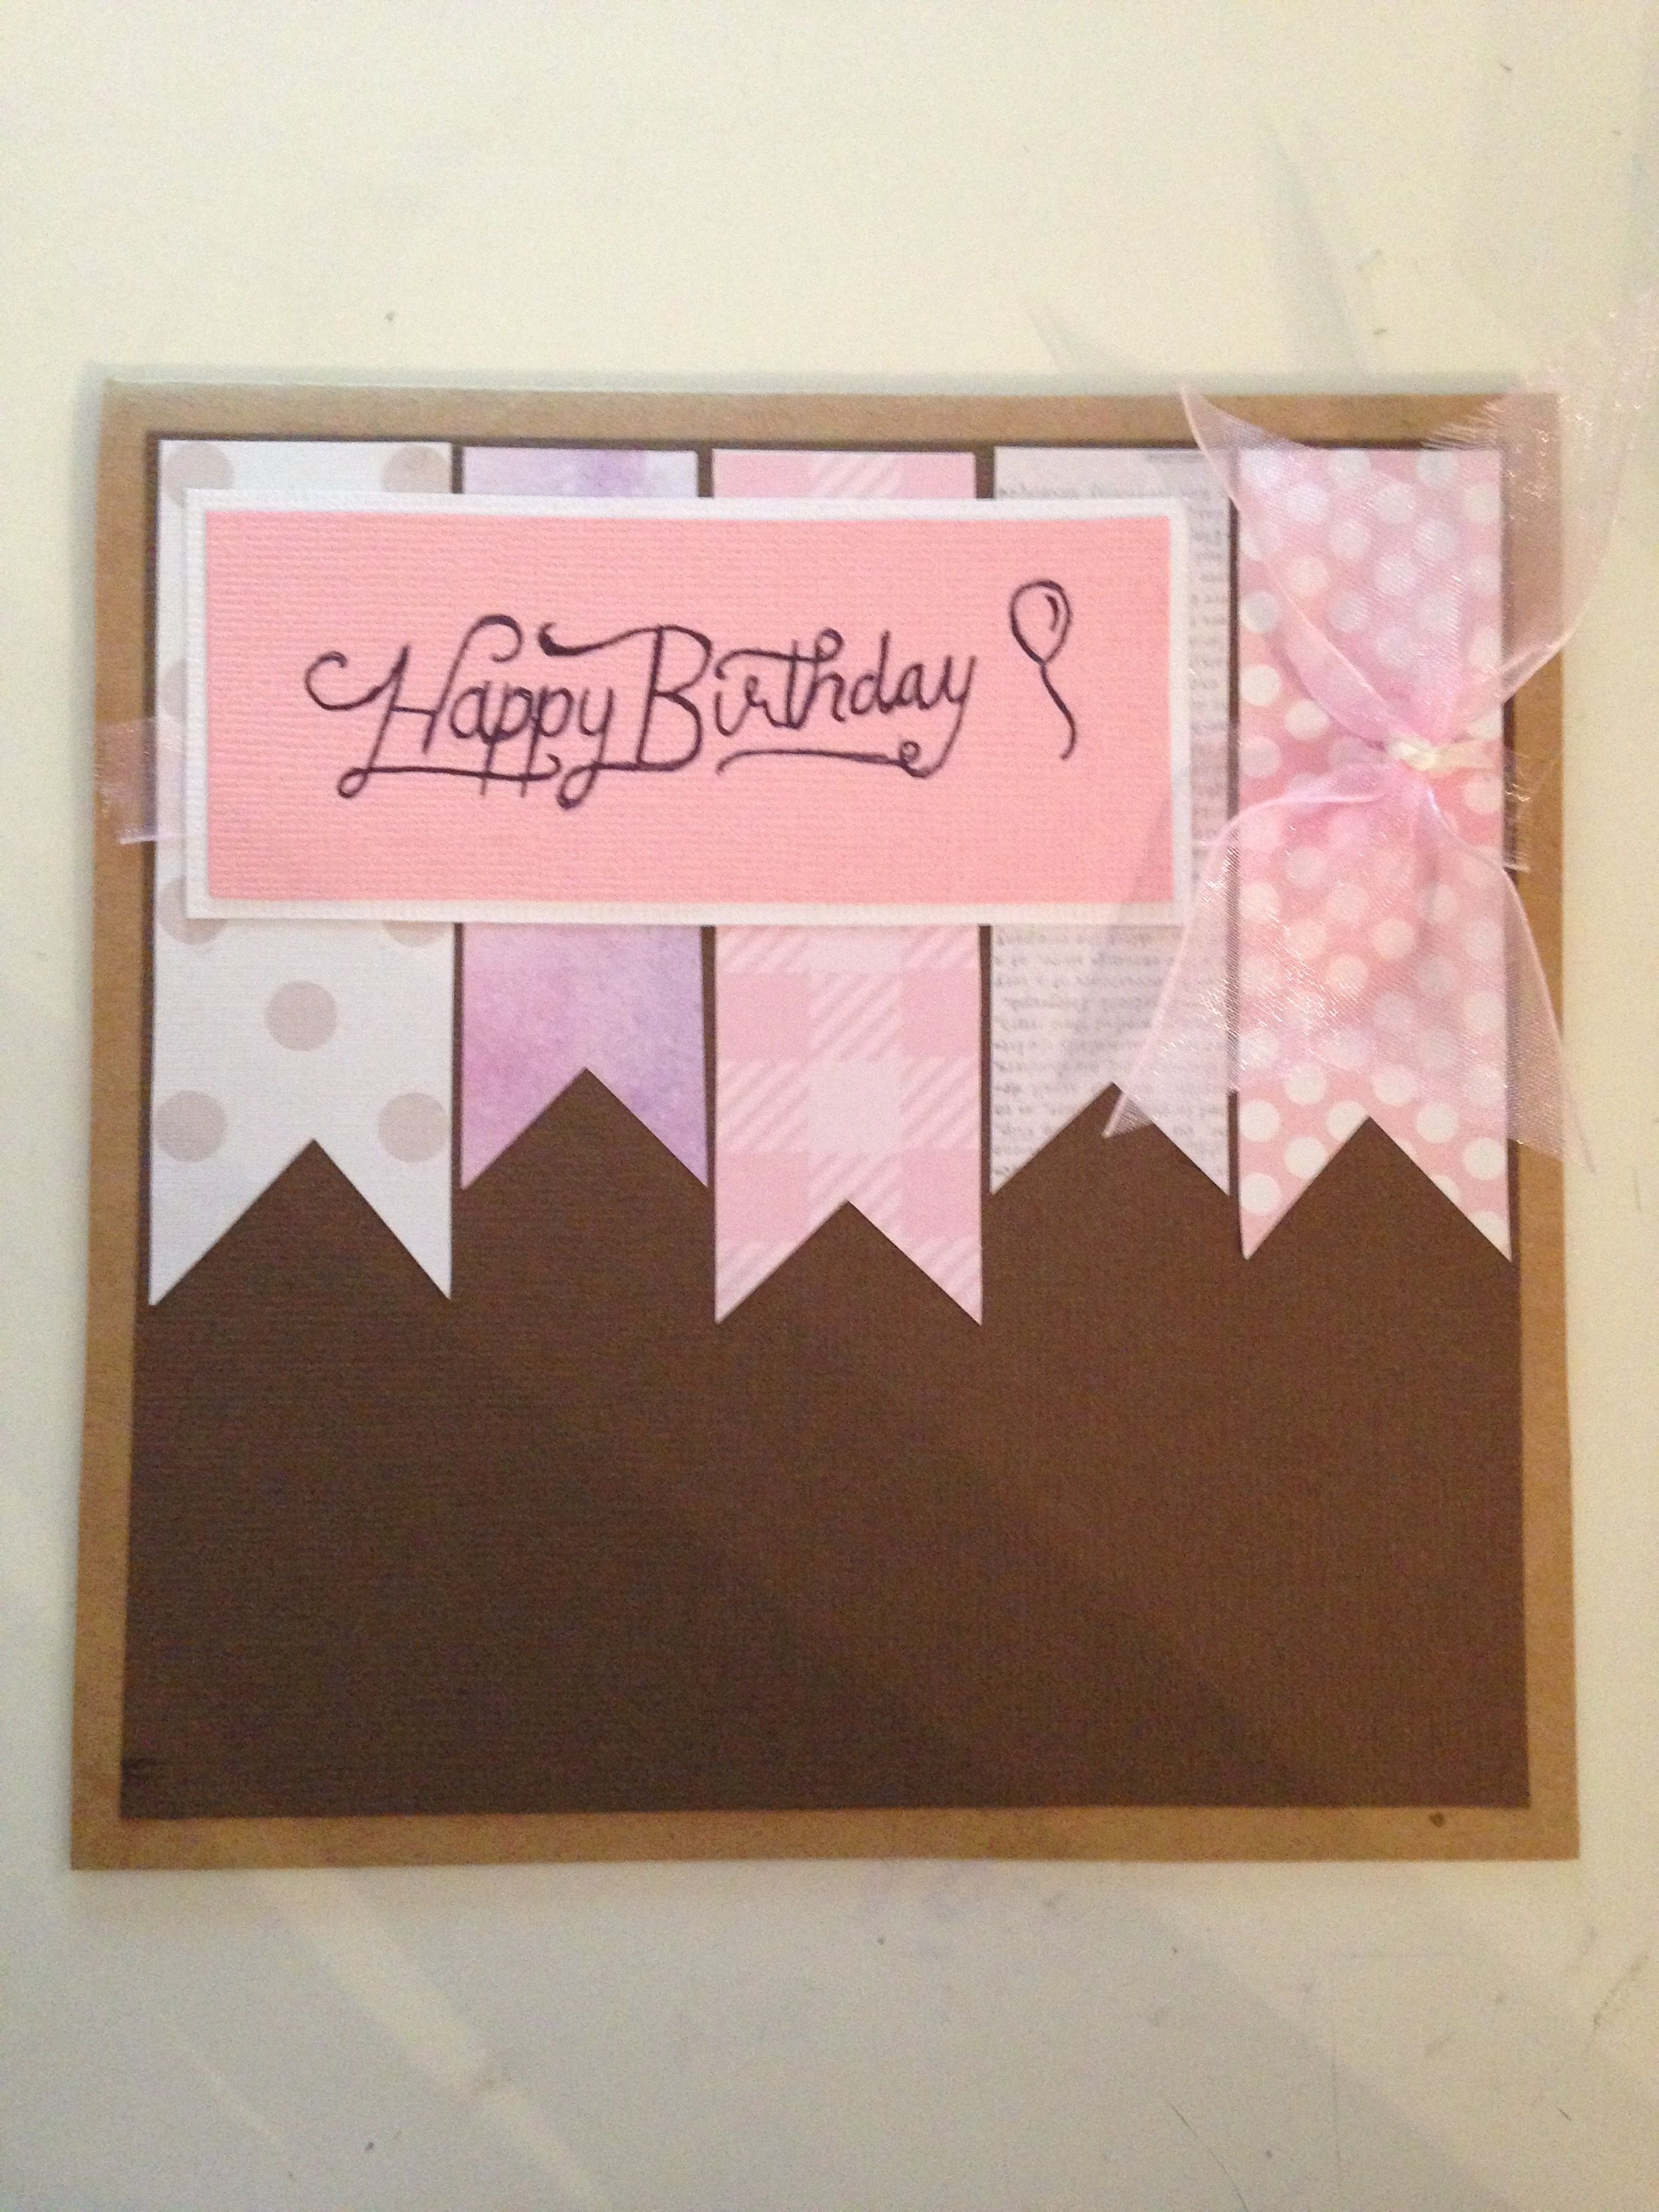 This Is The Cute In Pink Birthday Card I Made For My Aunts